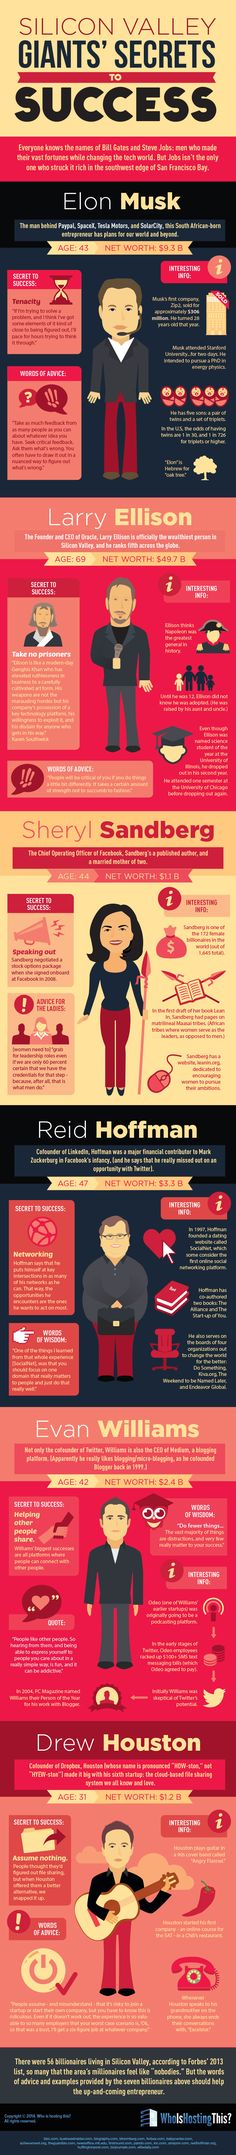 6 Secret Success Stories of Billionaires #Infographic